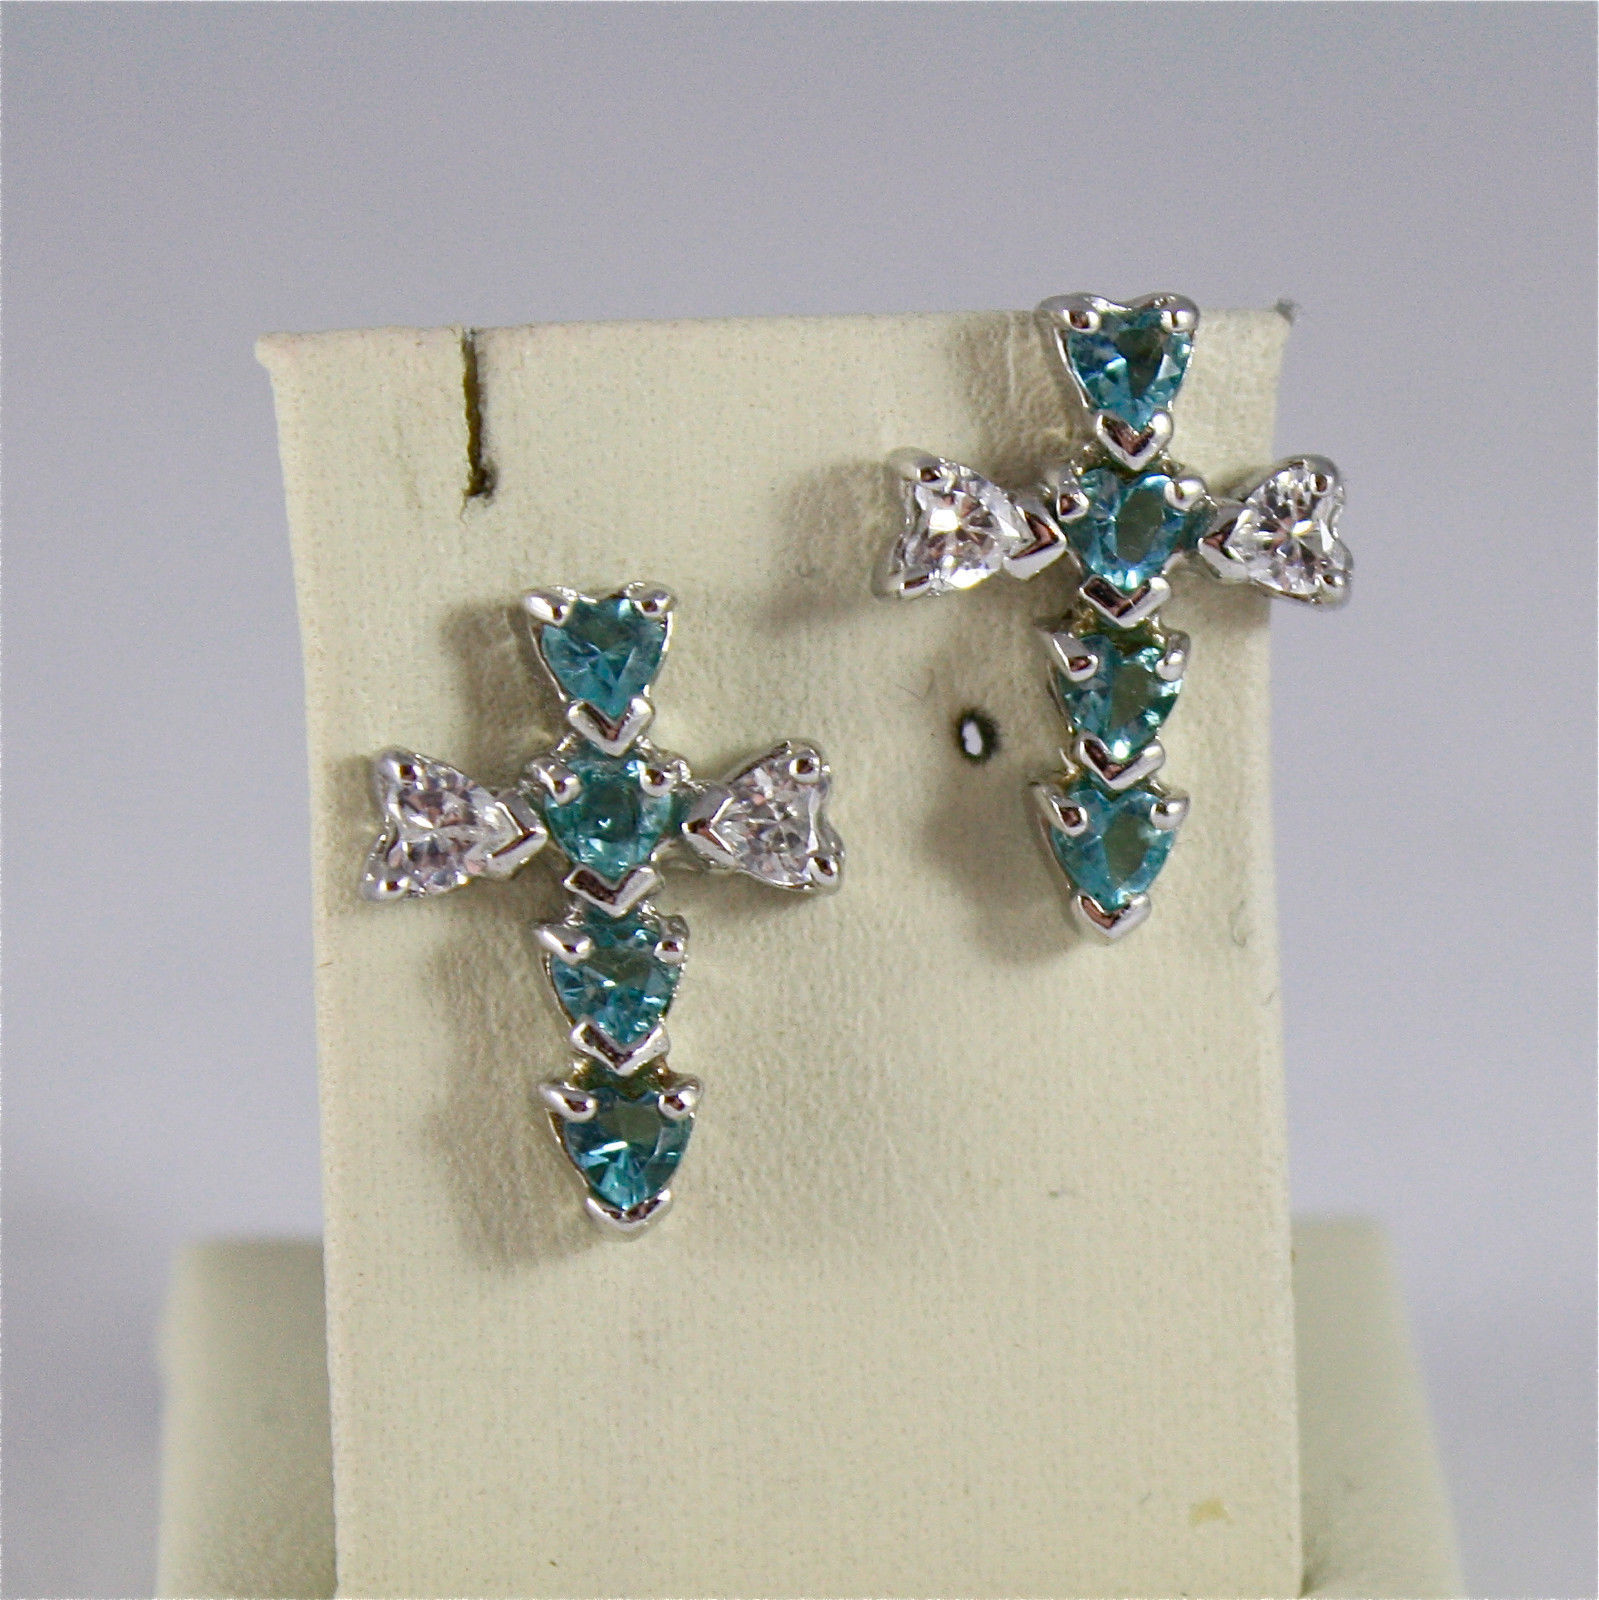 .925 RHODIUM SILVER EARRINGS, STYLIZED CROSS, FACETED ZIRCONIA, WHITE AND BLUE.